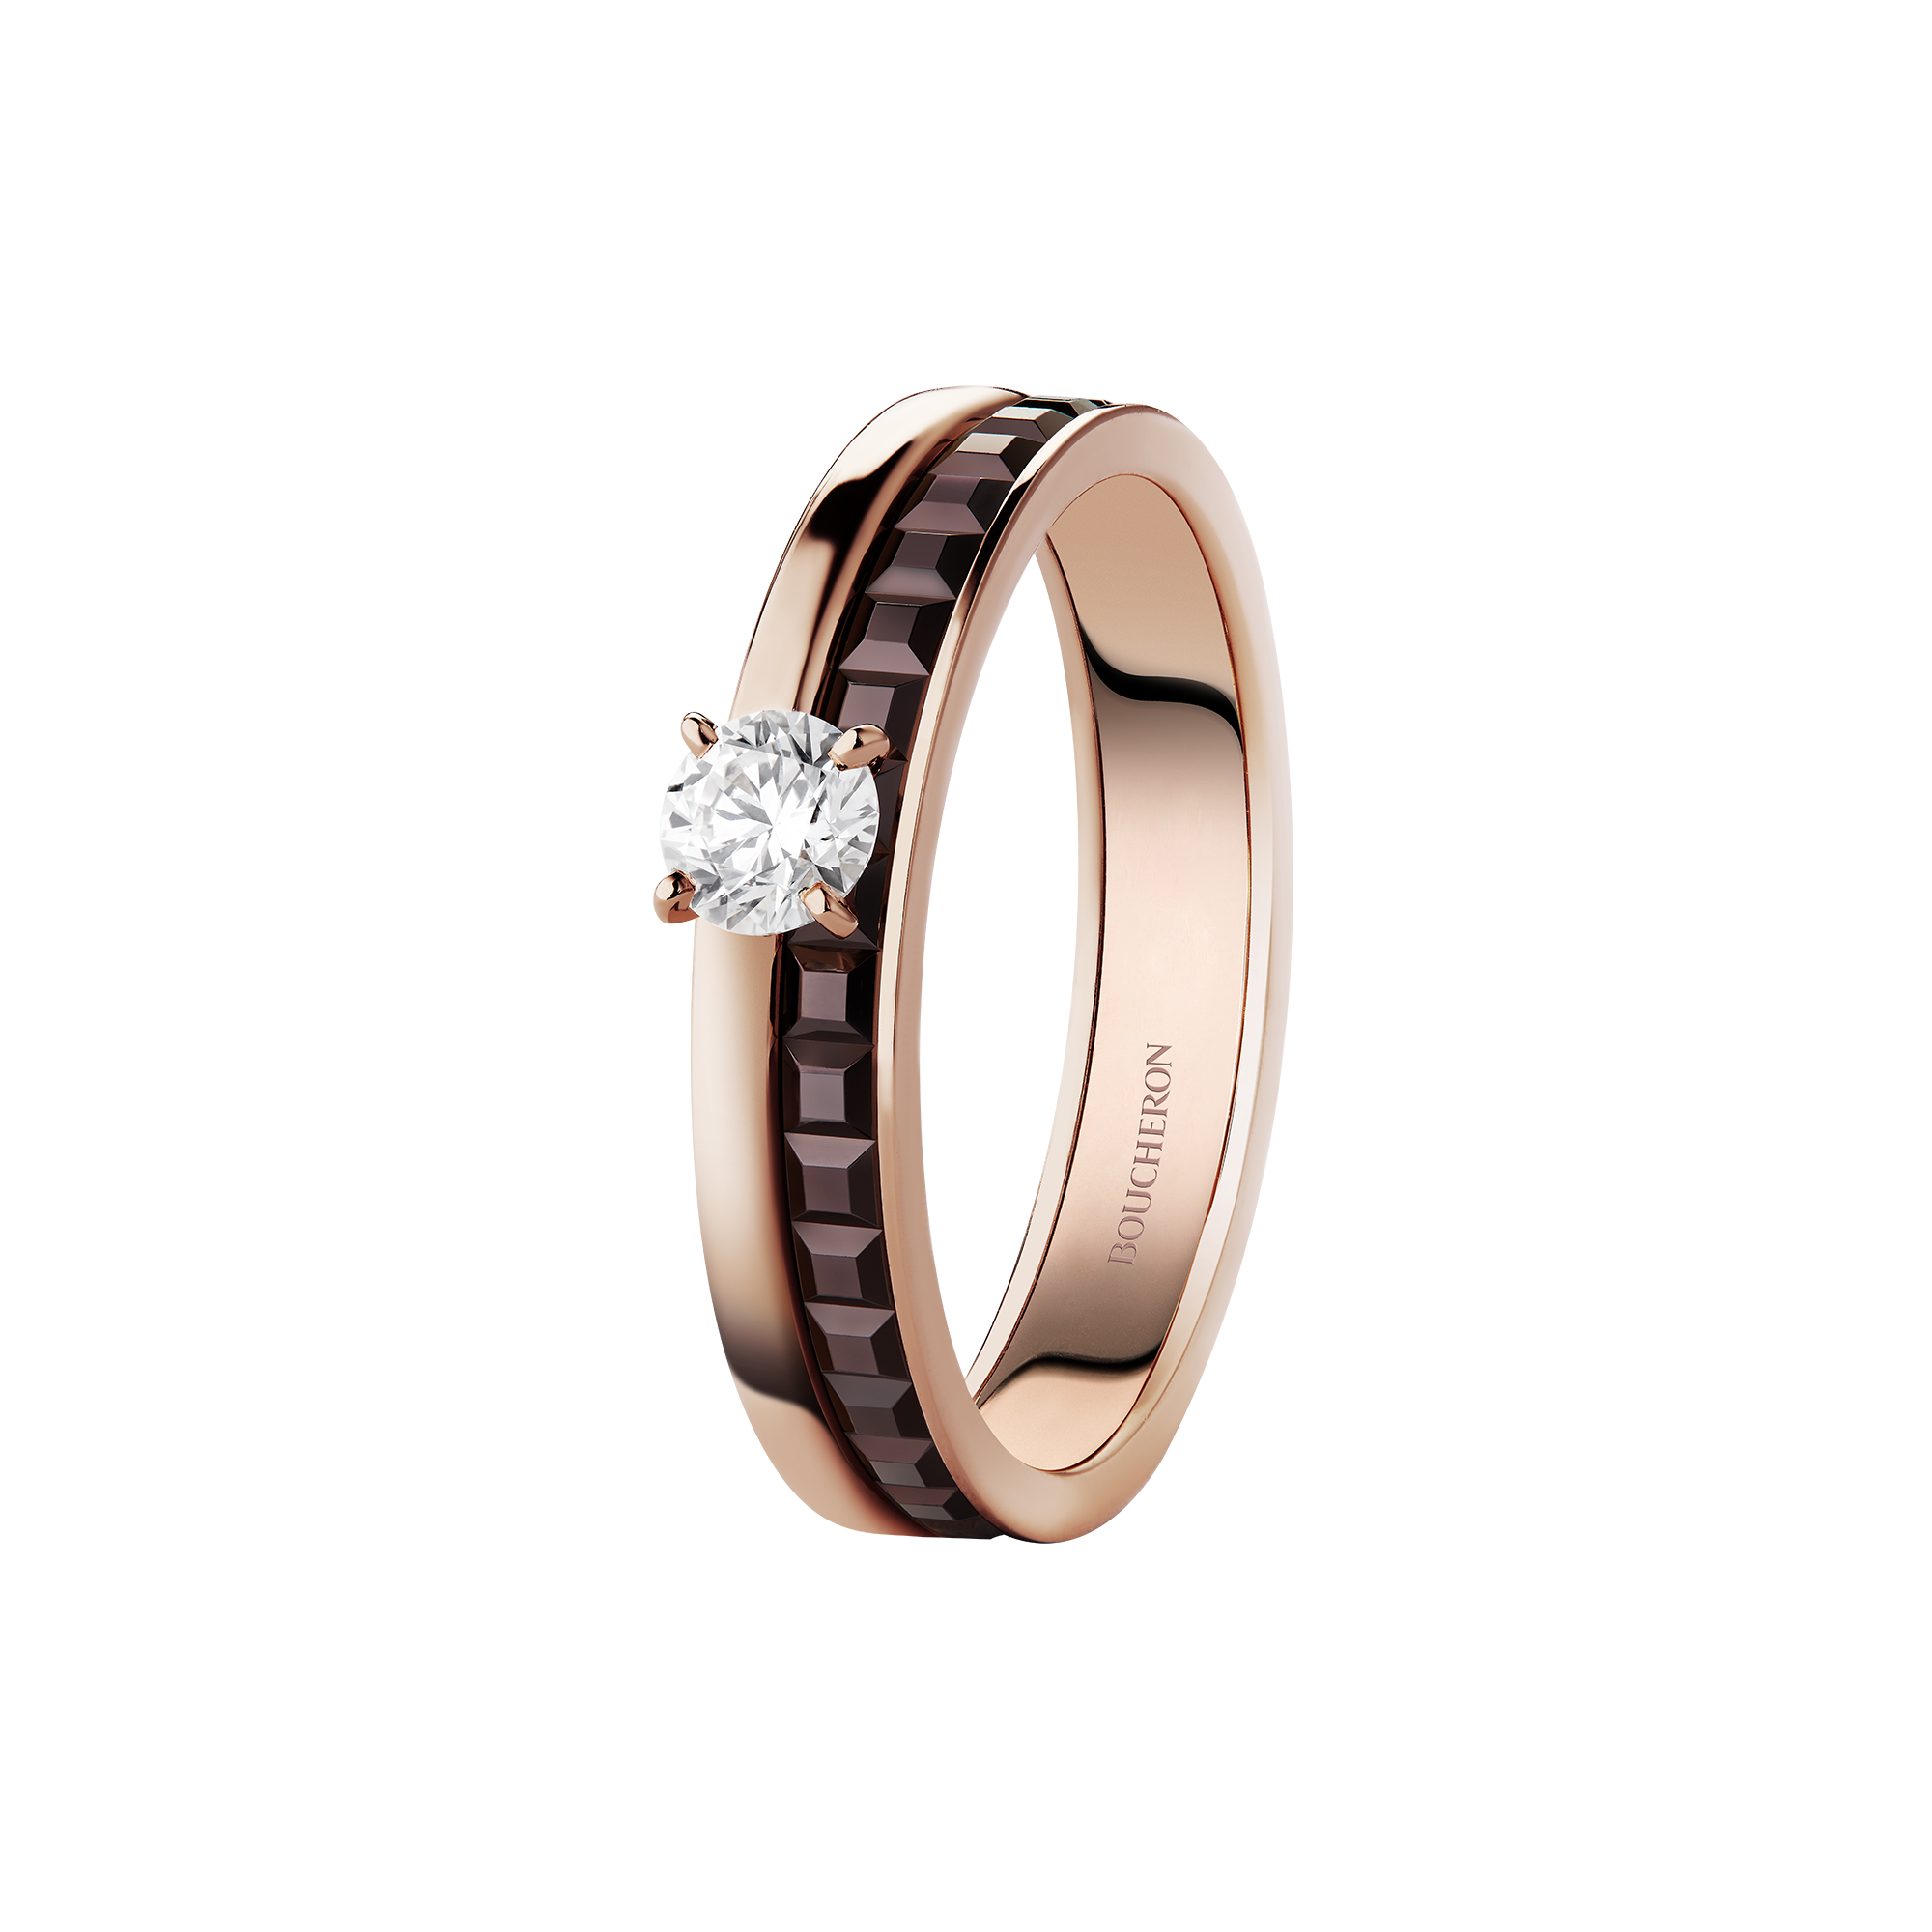 Boucheron Quatre Classique Edition solitaire in pink and yellow gold